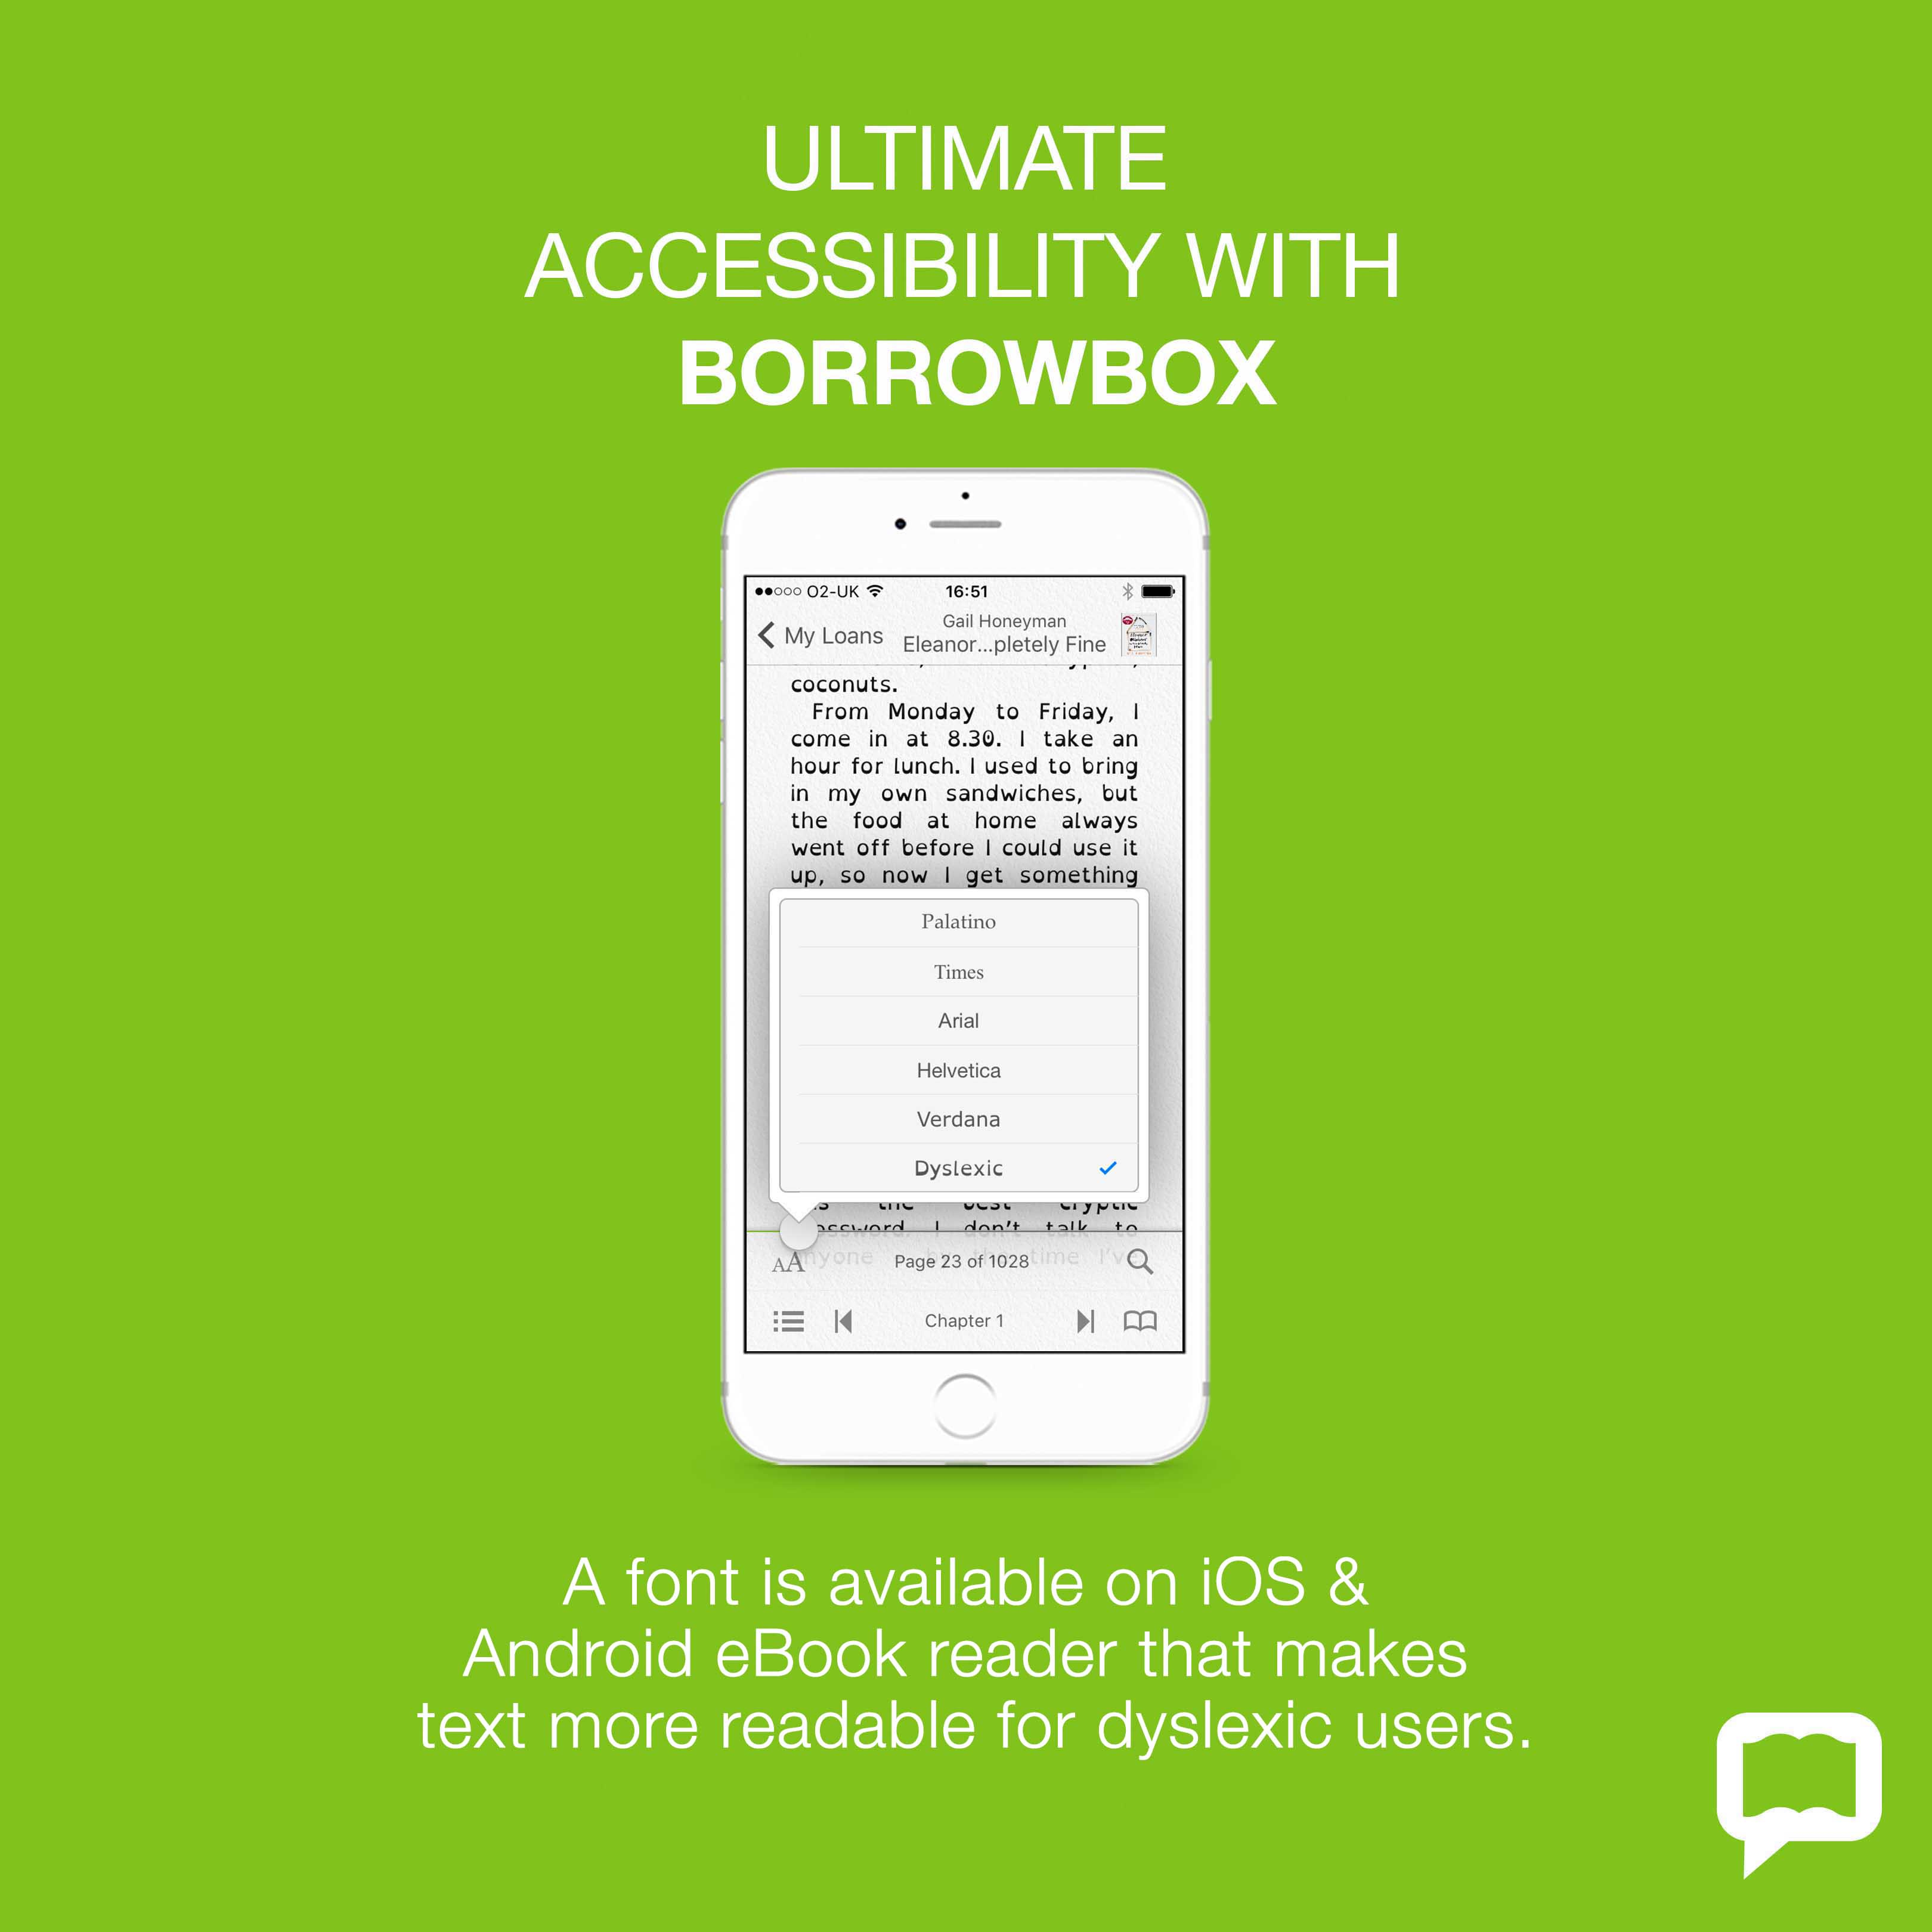 BorrowBox Accessibility - A font is available suitable for Dyslexic readers